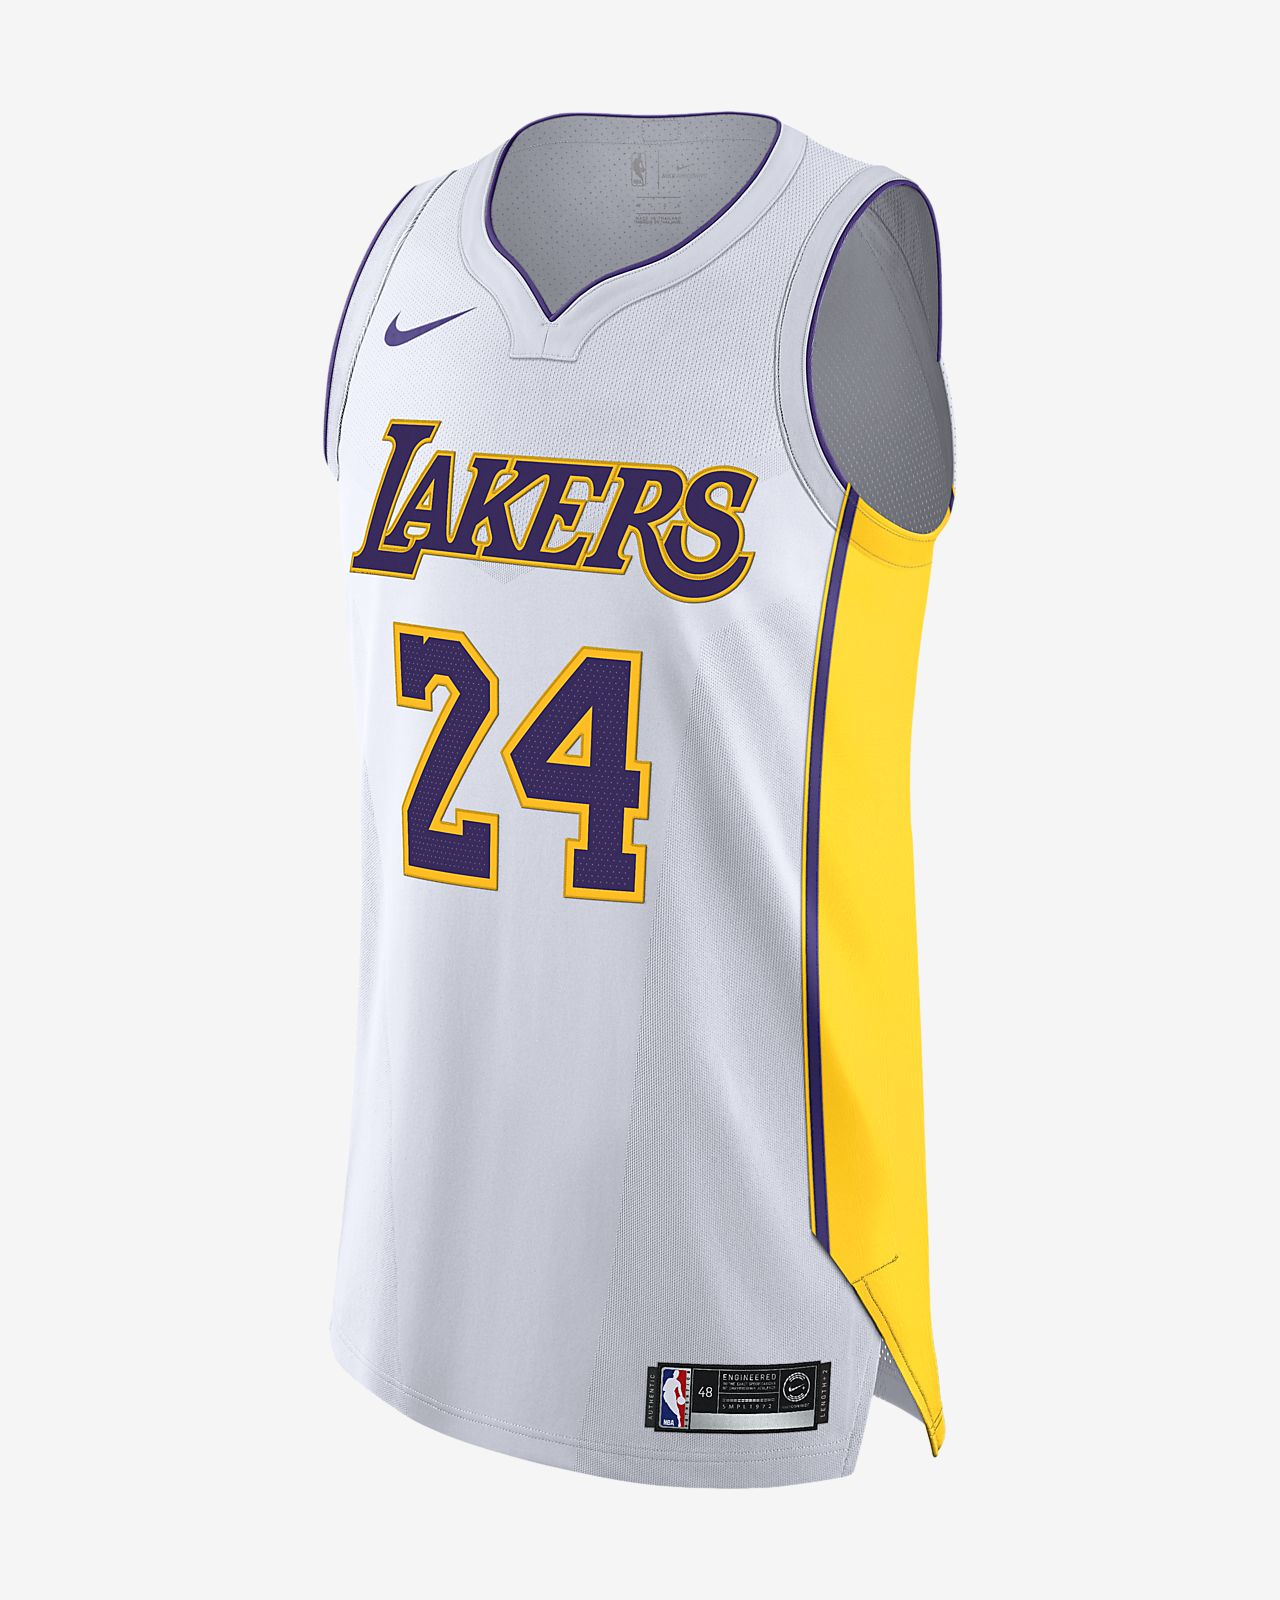 Pánský dres Nike NBA Connected Kobe Bryant Association Edition Authentic (Los Angeles Lakers)